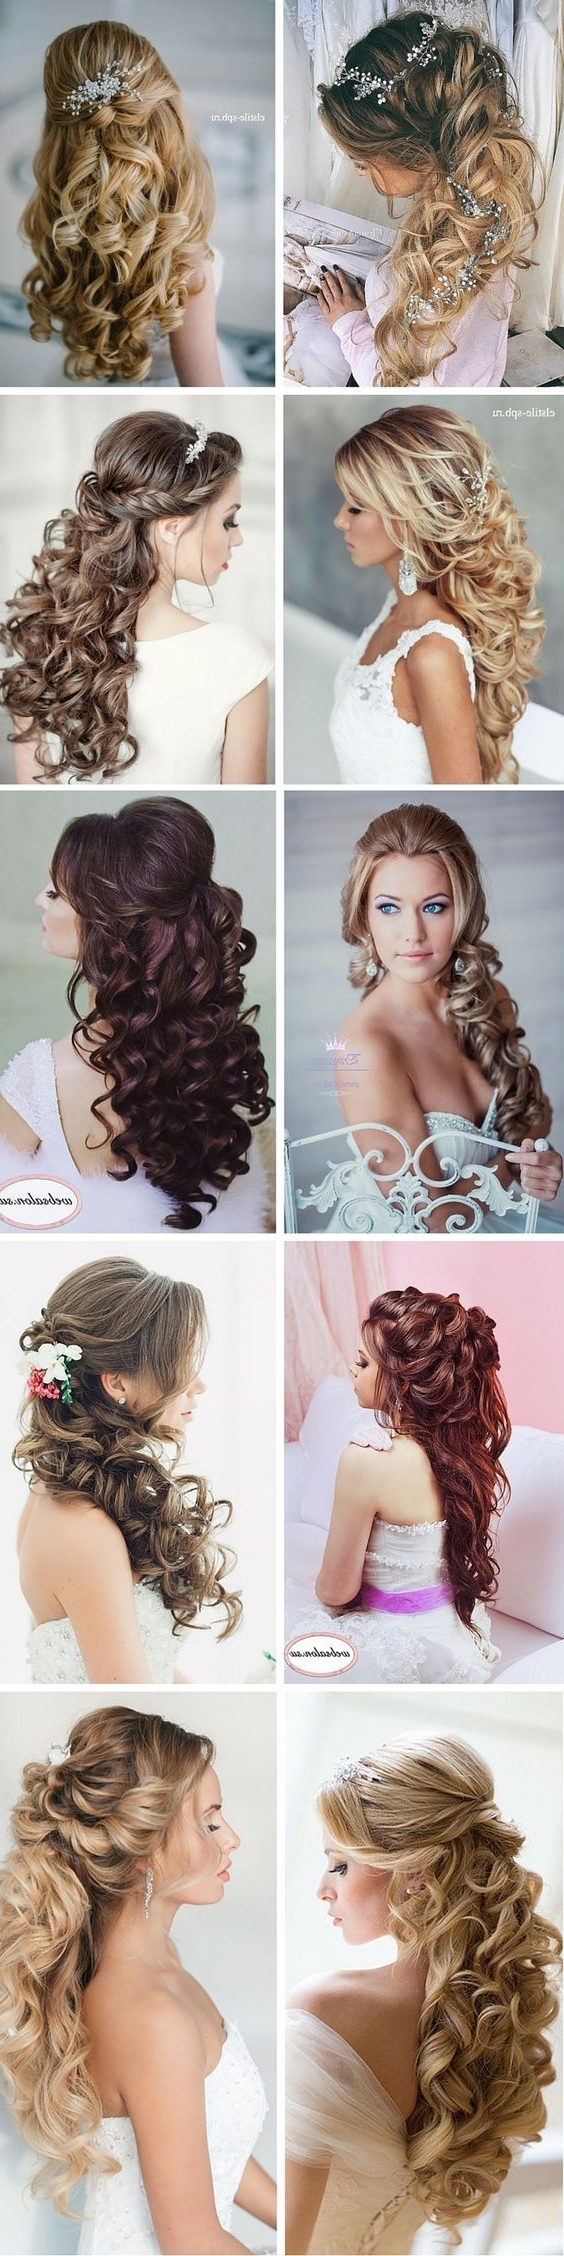 Elegant Curly Half Up Half Down Wedding Hairstyles / Http://www Throughout Newest Half Up Wedding Hairstyles Long Curly Hair (View 4 of 15)